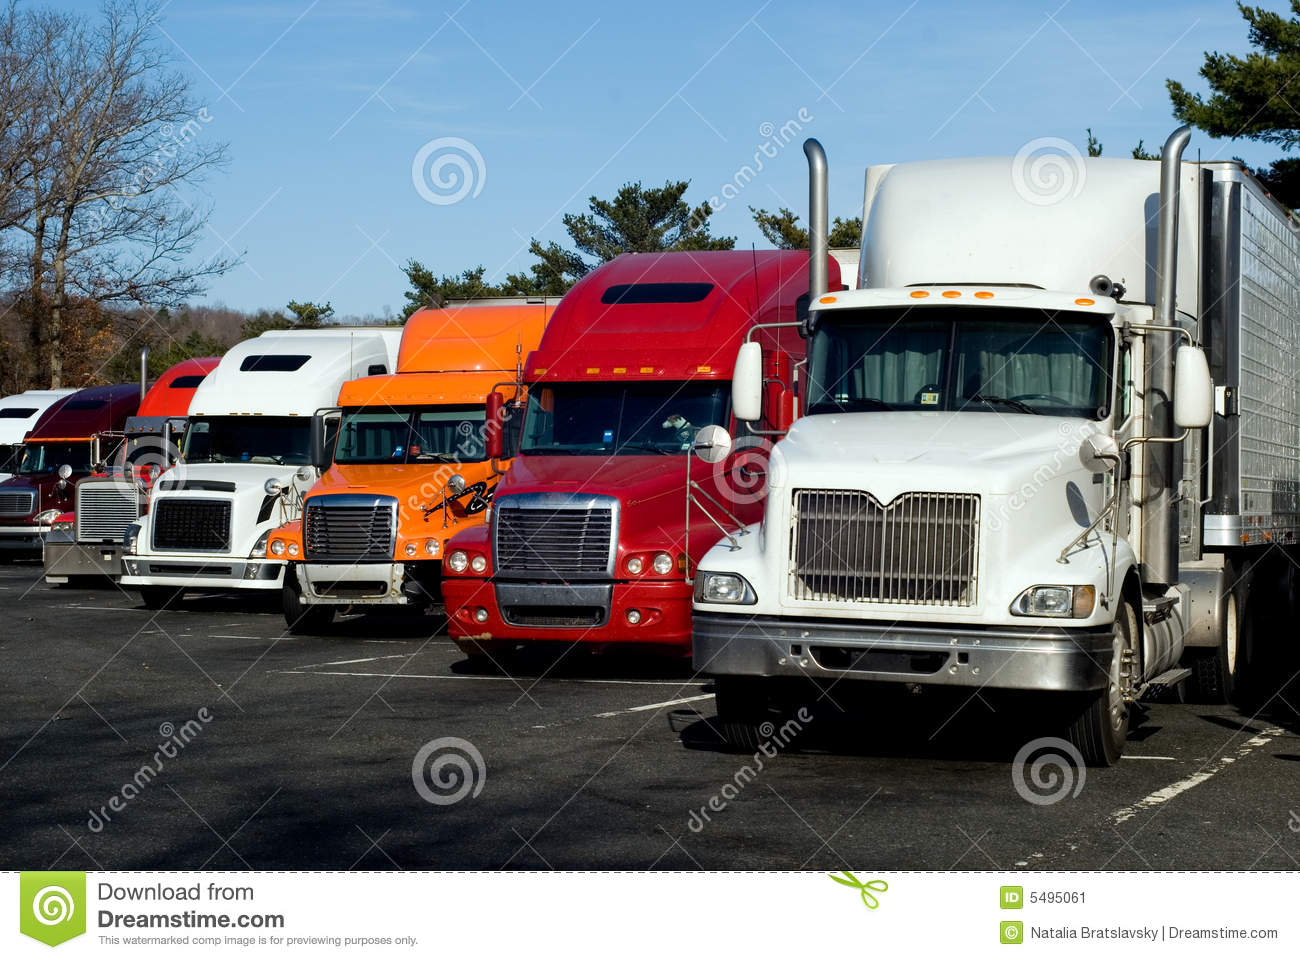 Truck rest area